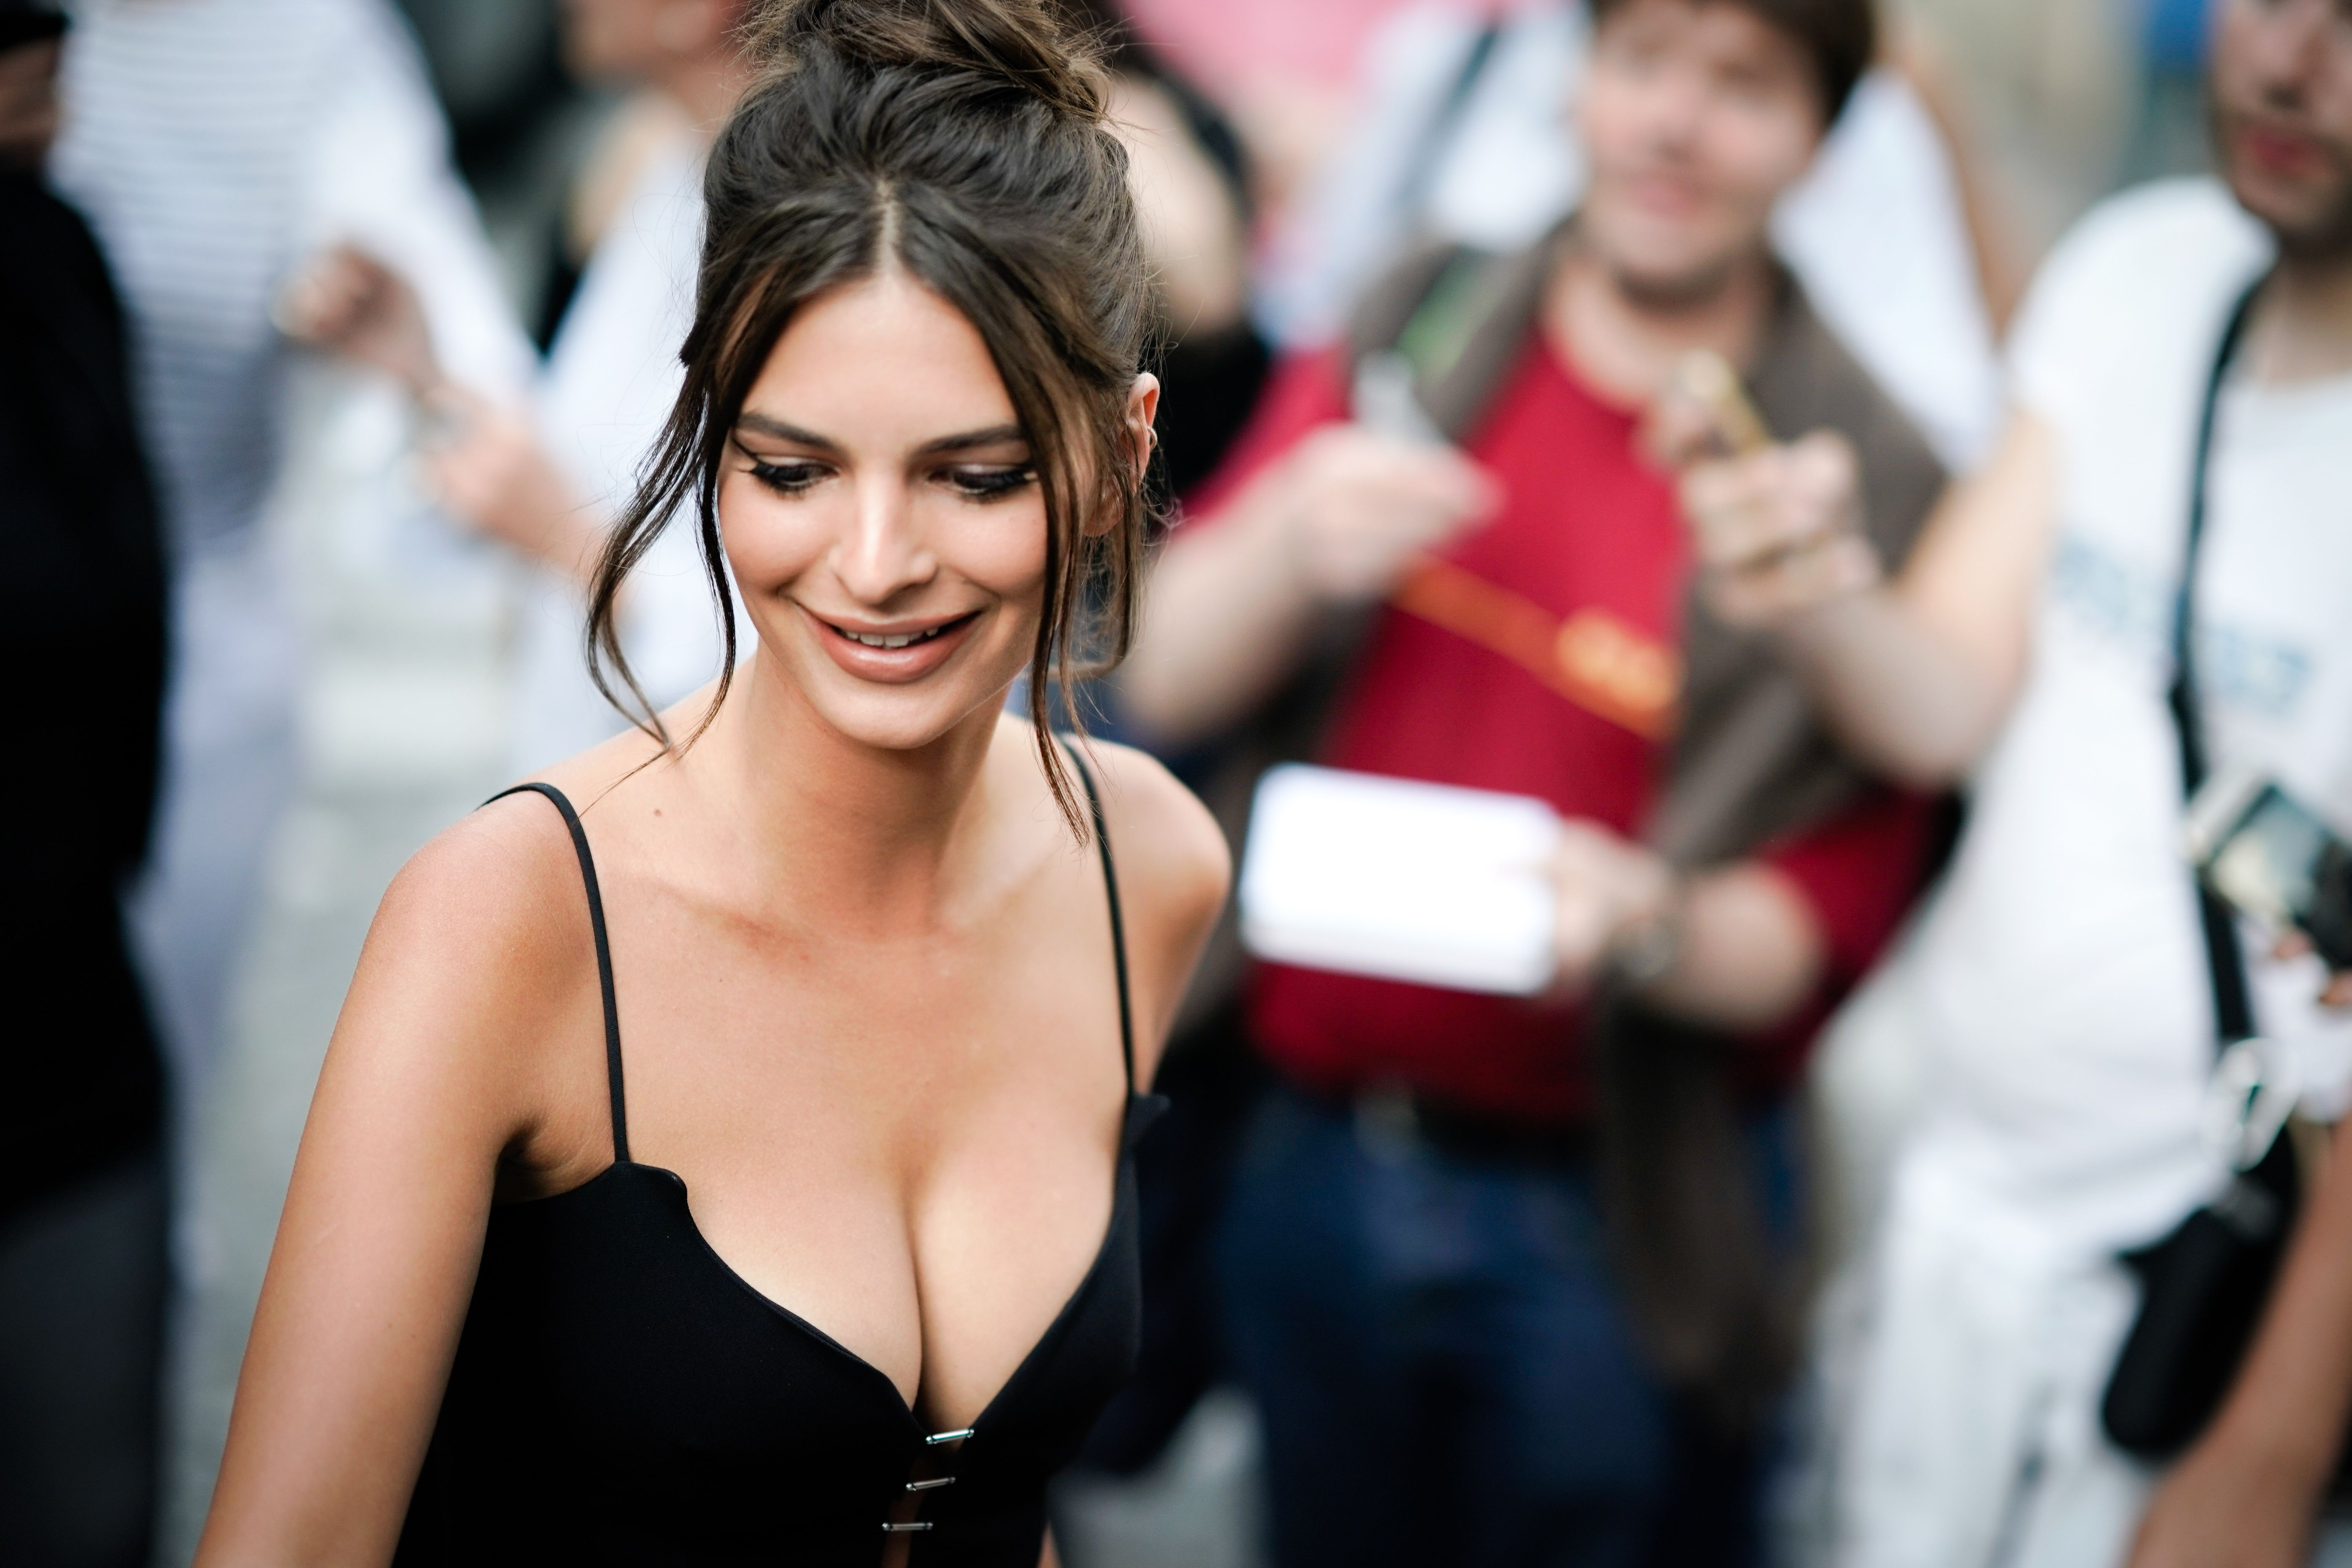 emily ratajkowski is being sued over an